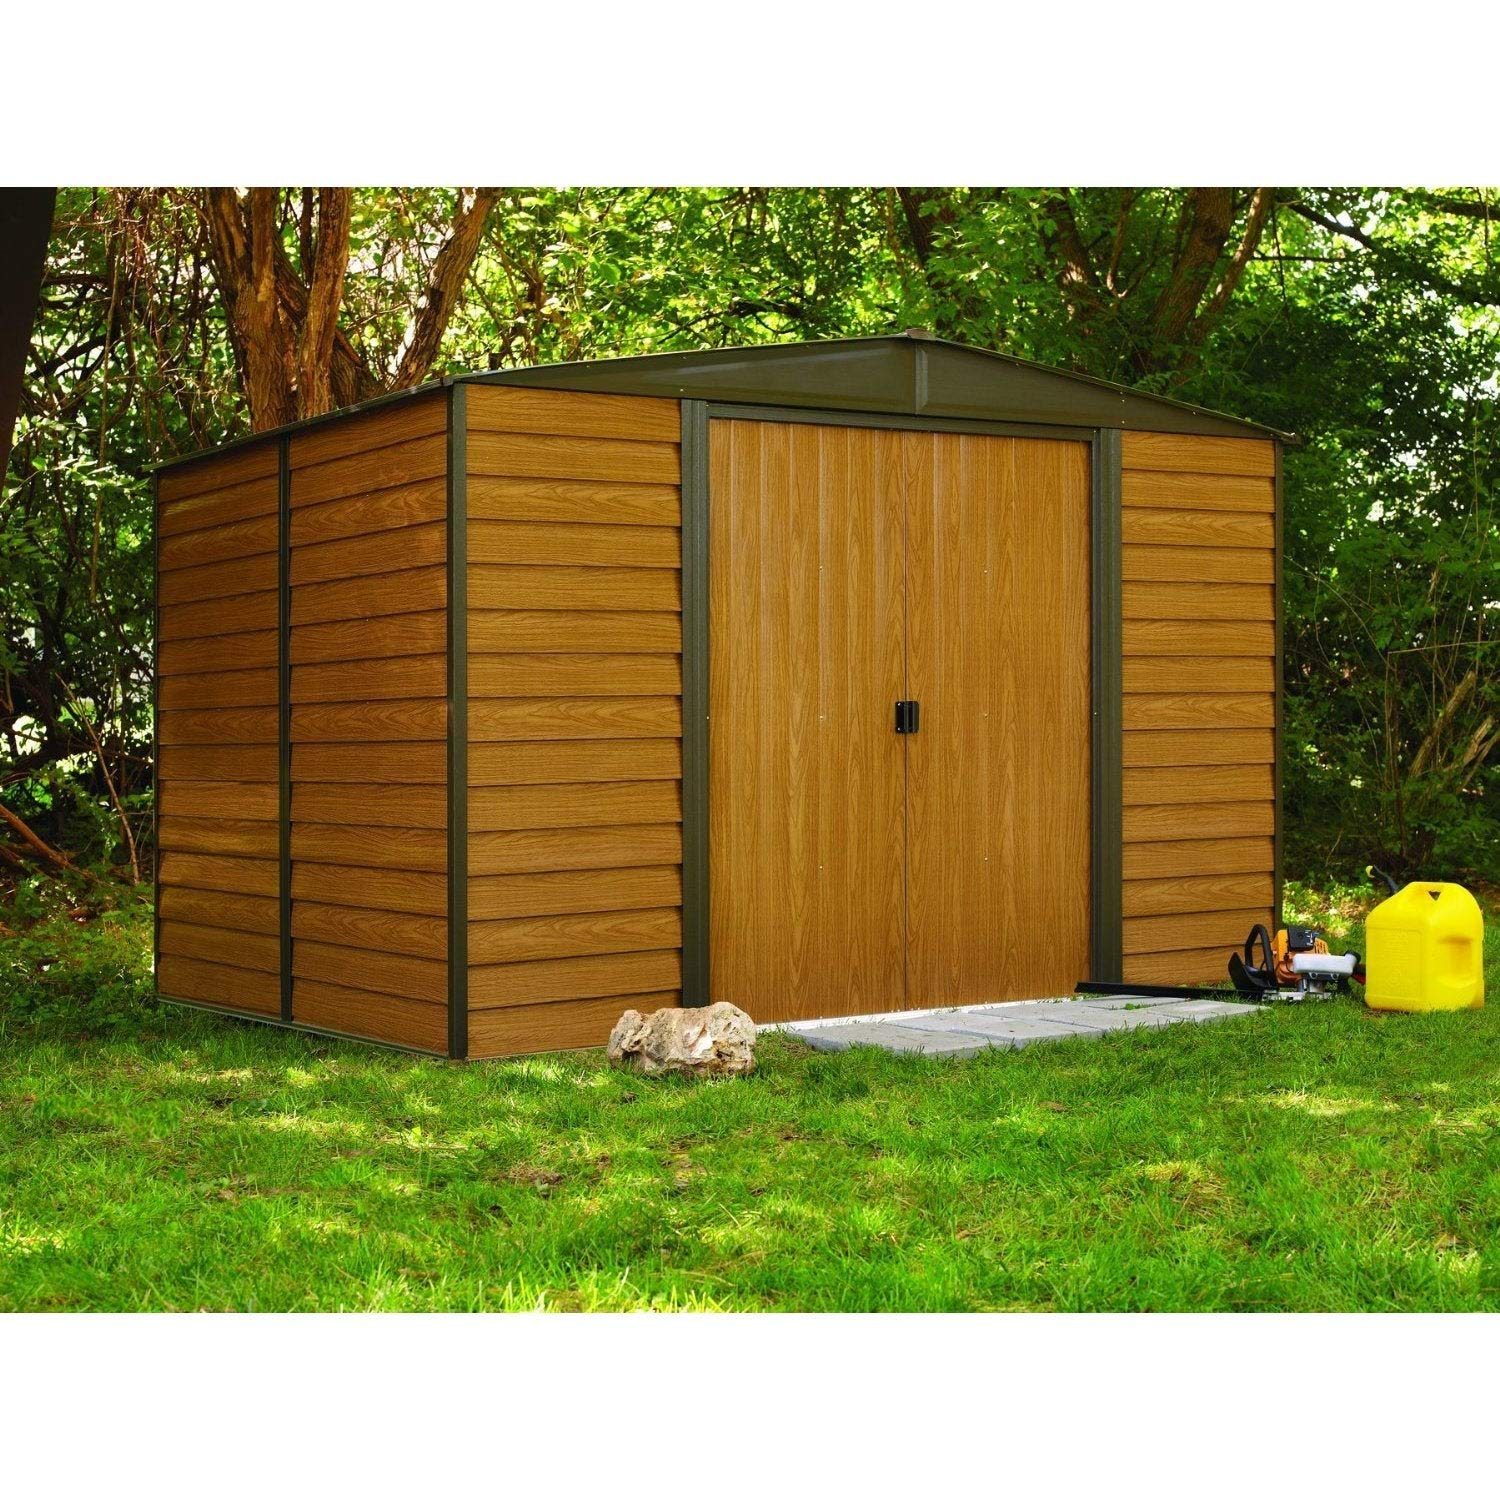 10 X 12 Ft. Steel Storage Shed Coffee/Woodgrain Brown